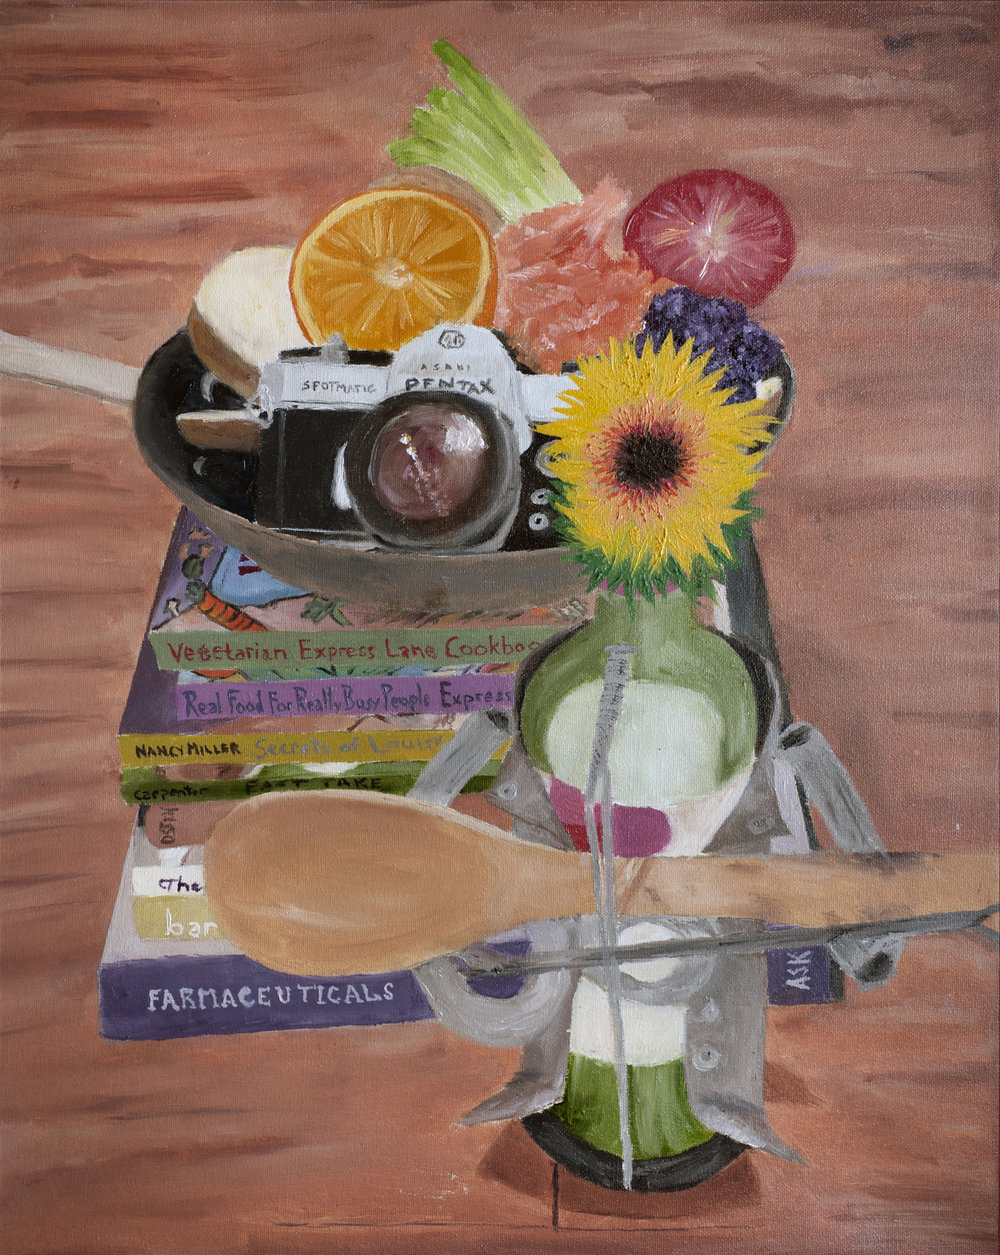 FARMaceuticals - 2017. Oil on canvas. 16x20in.Access to proper ingredients is mandatory for intentional nutrition of body, mind, and soul.—Flash Mom